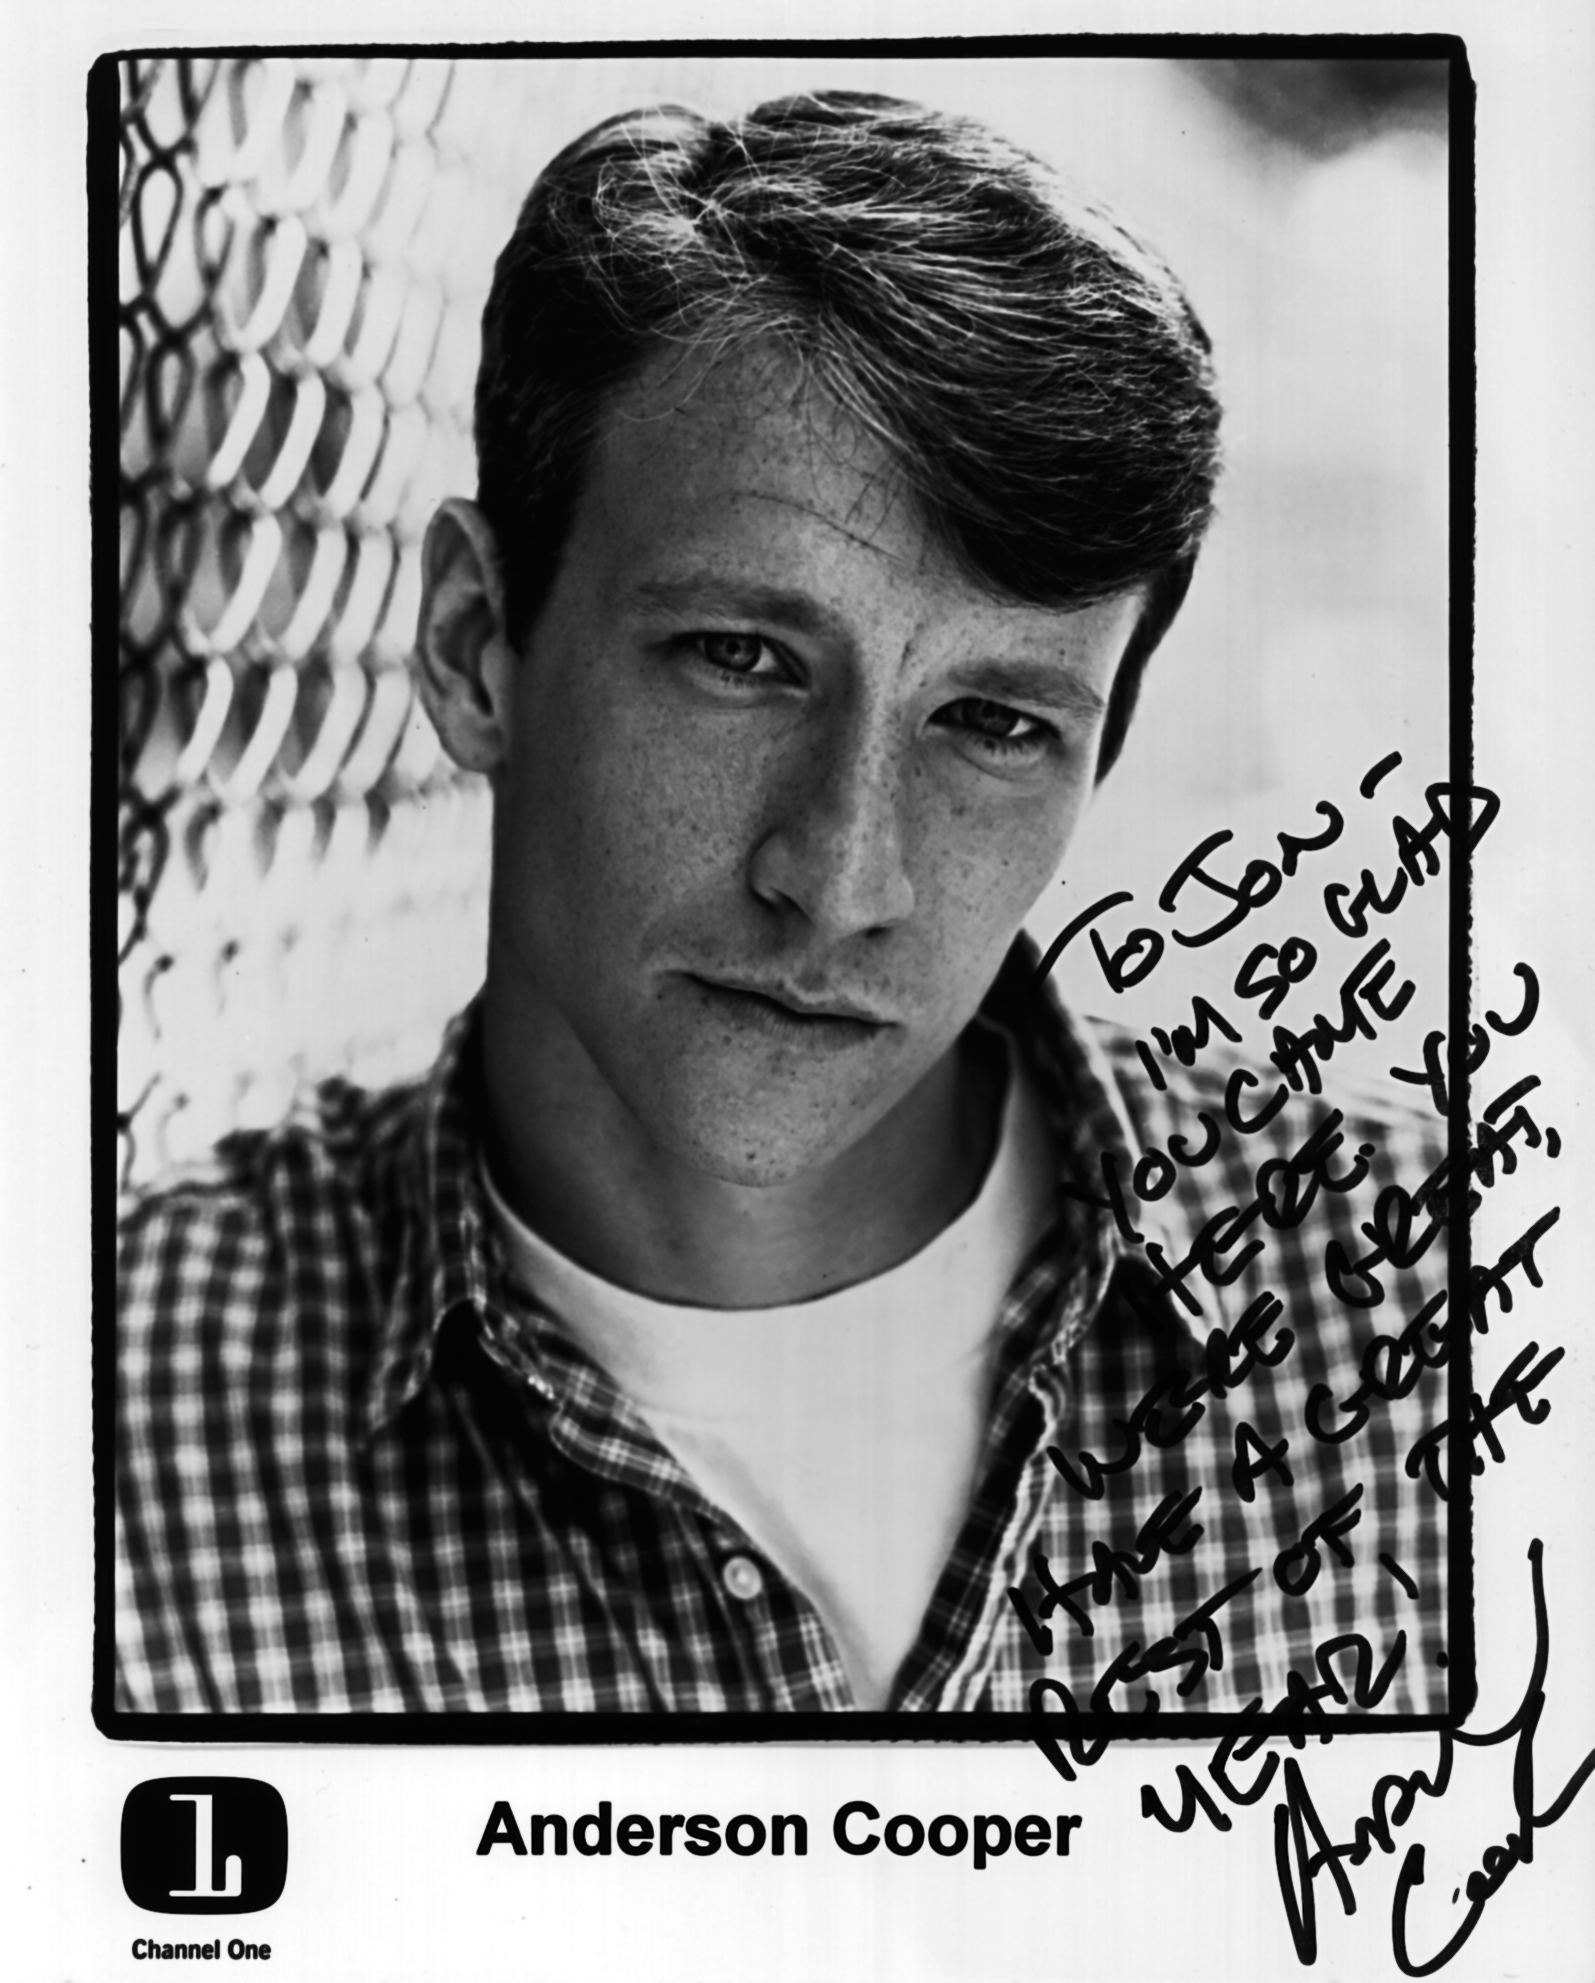 Signed 1995 Autograph from Anderson Cooper - To Jon. I'm so glad you came here. You were great and have a great rest of the year! Anderson Cooper.